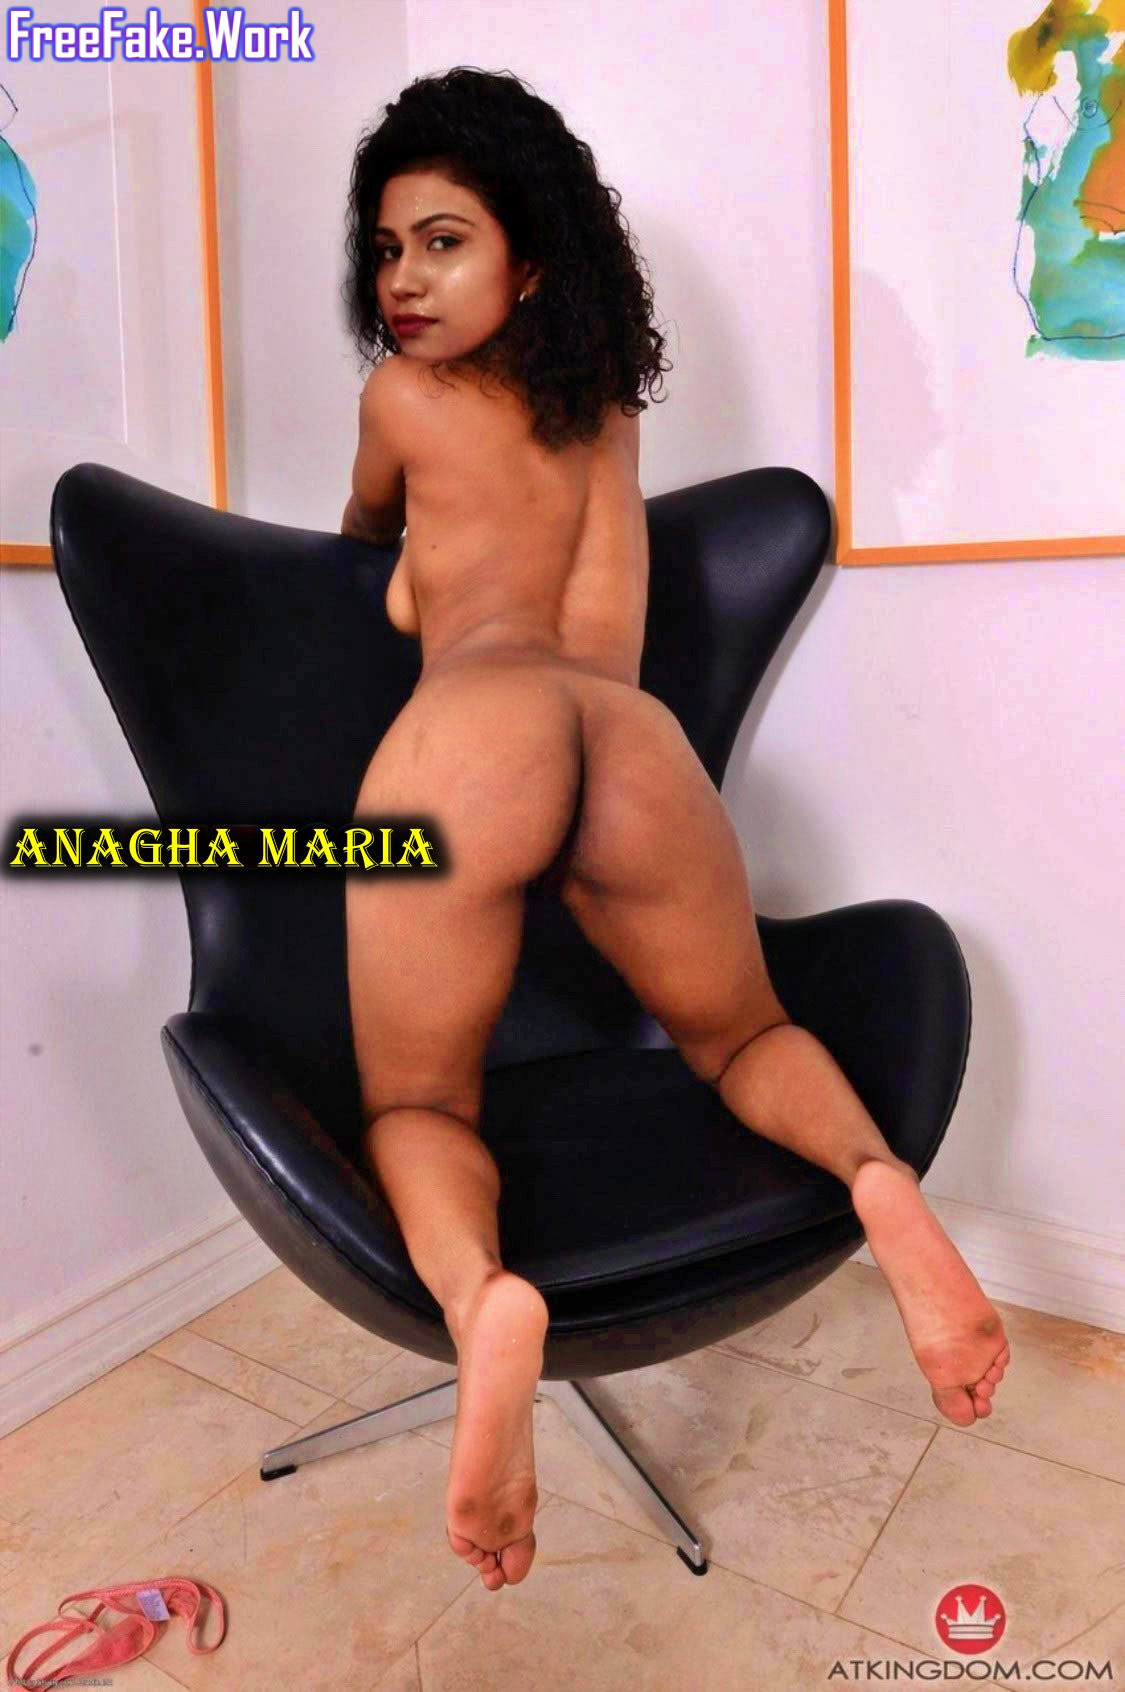 Anagha-Maria-Varghese-nude-ass-naked-back-pose-on-chair-pic.jpg